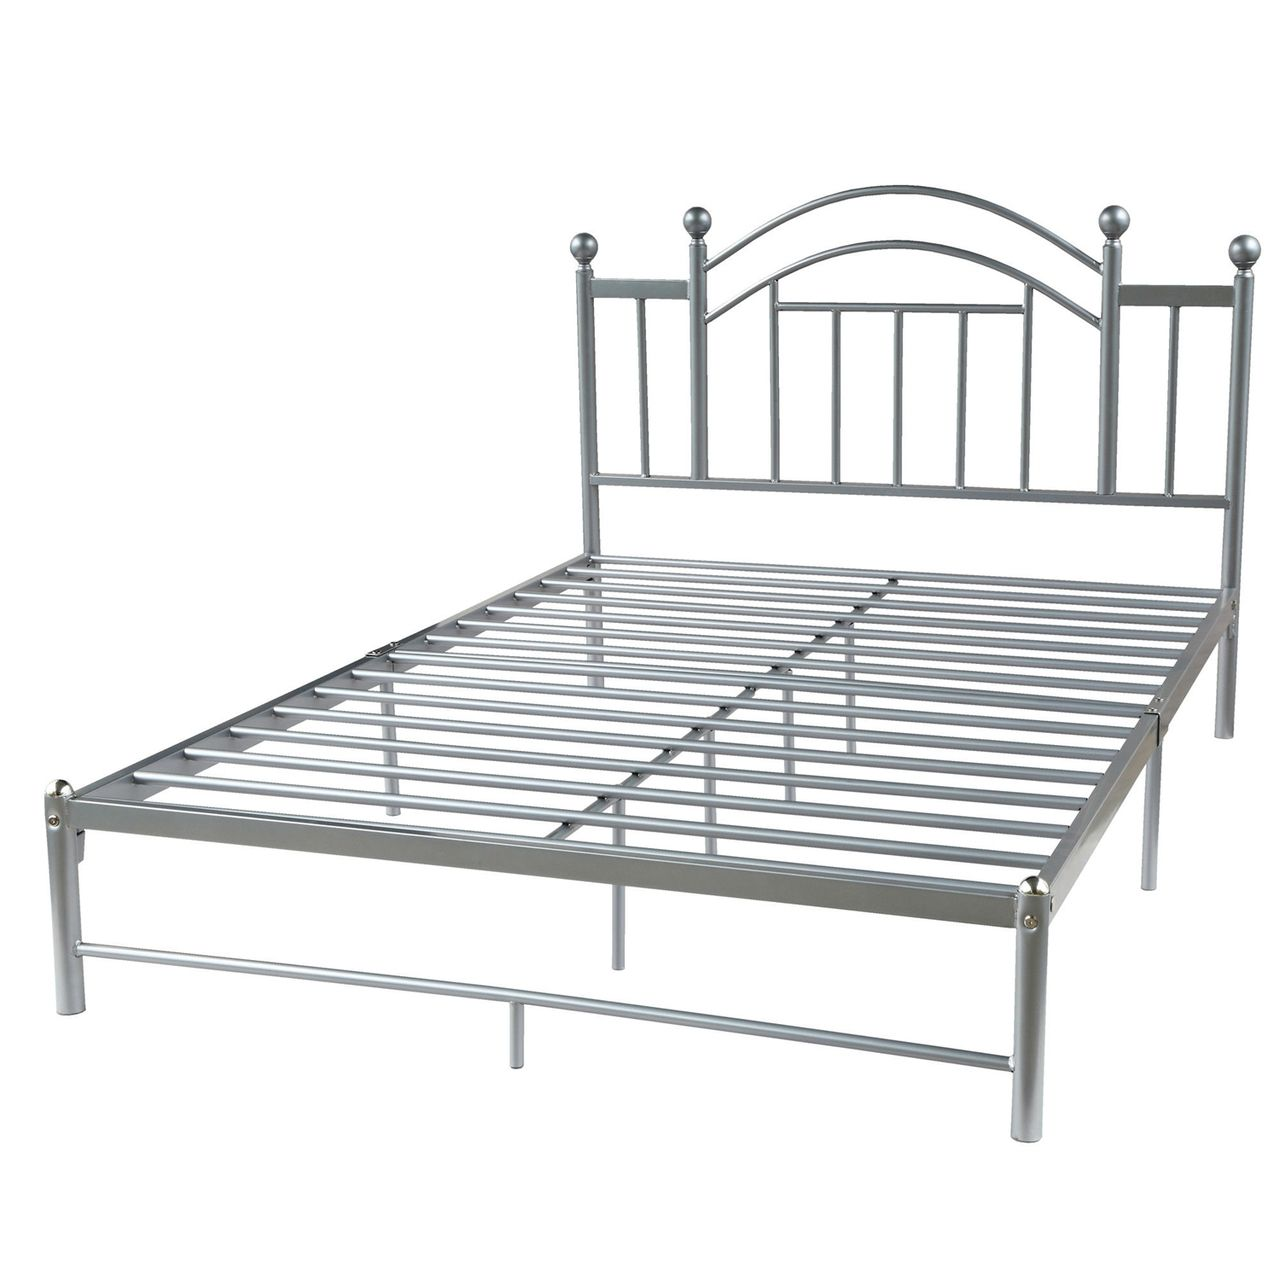 queen size metal platform bed frame with headboard in silver finish quality house metal bed. Black Bedroom Furniture Sets. Home Design Ideas